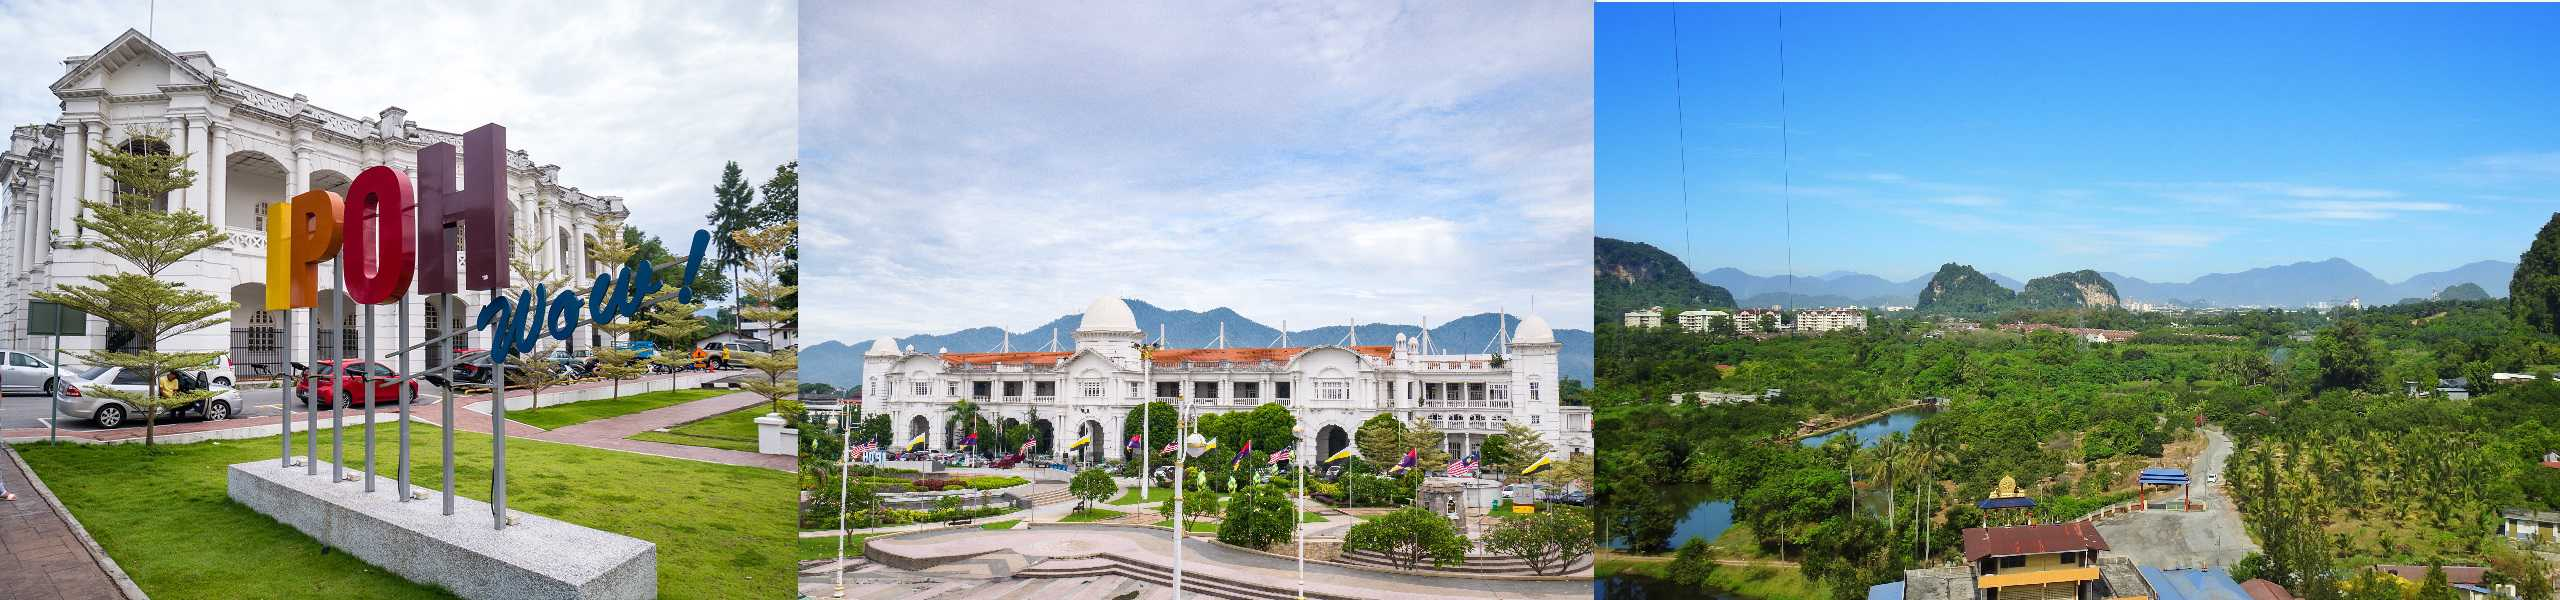 Du lịch Ipoh Malaysia